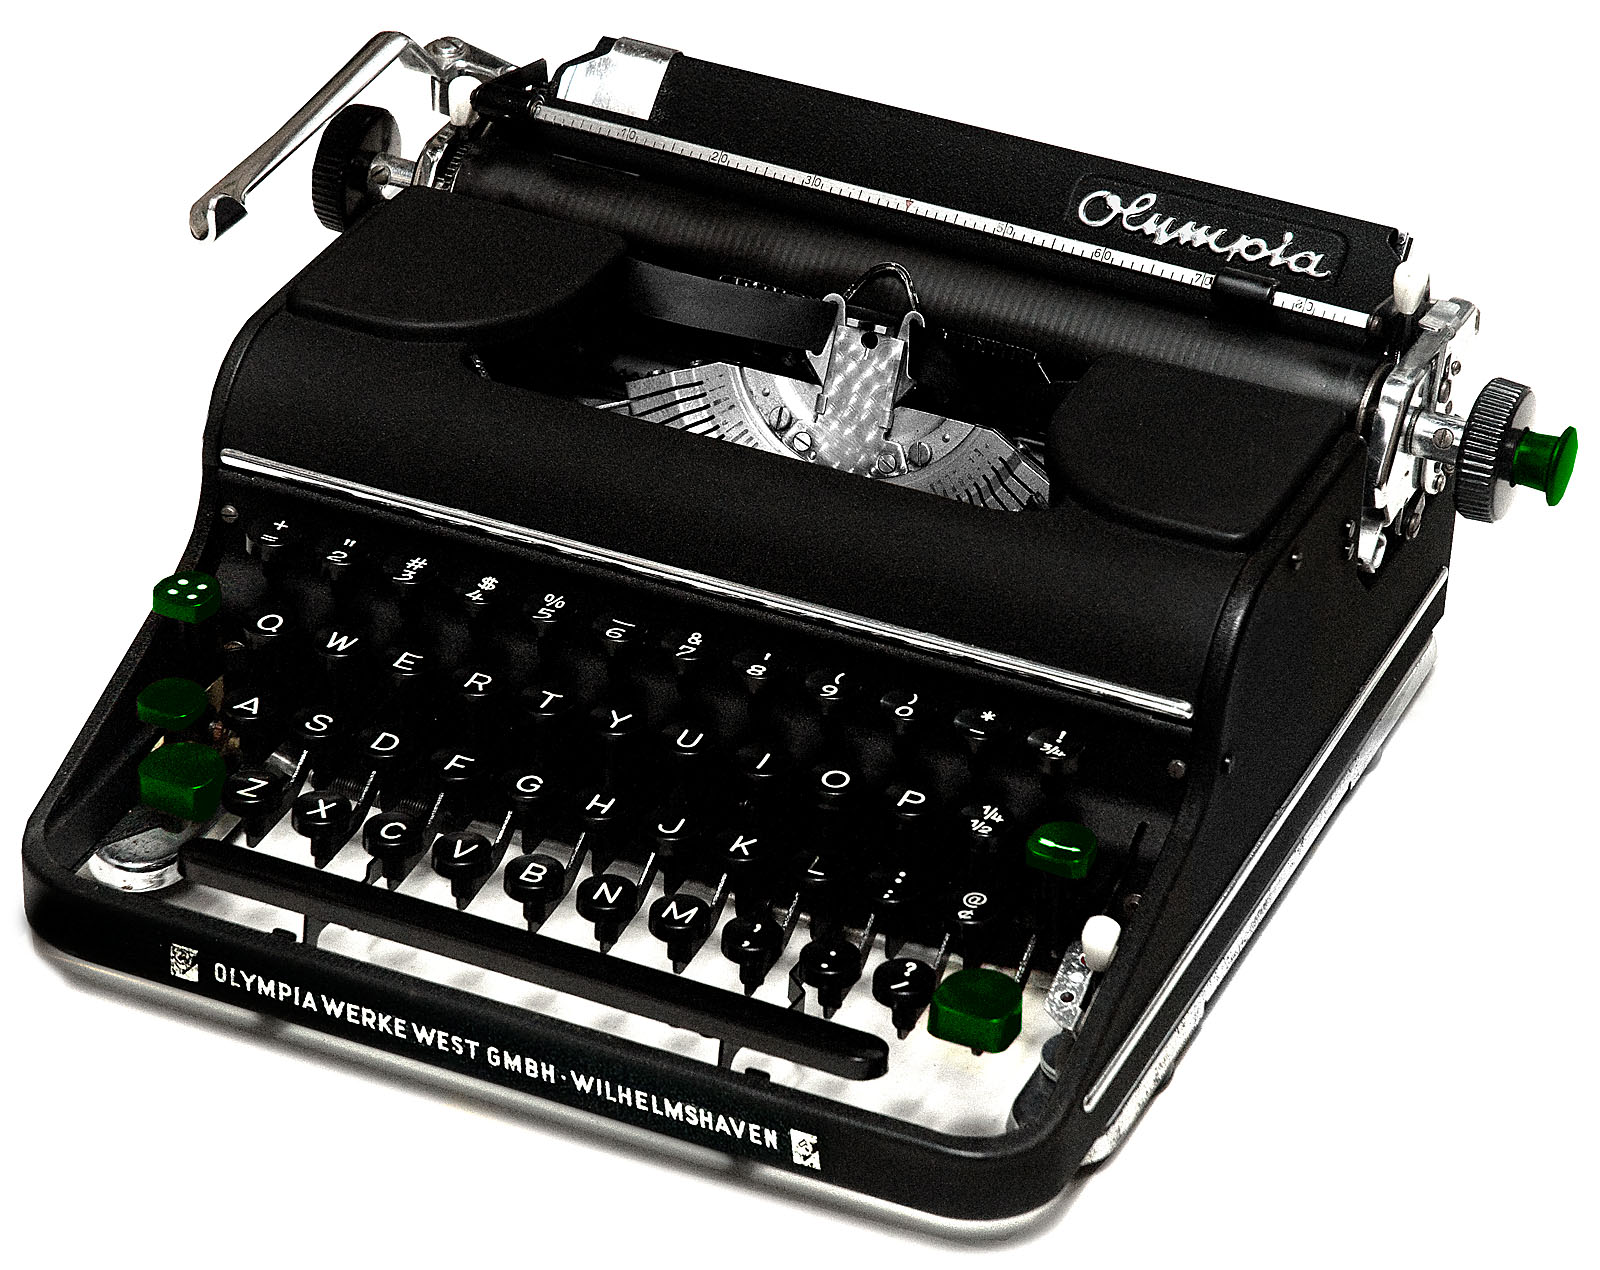 typewriter case essay Environment essay: business ethics case study environmental compliance is a thing that plays a positive role for further successful business development according to the latest news, the main.